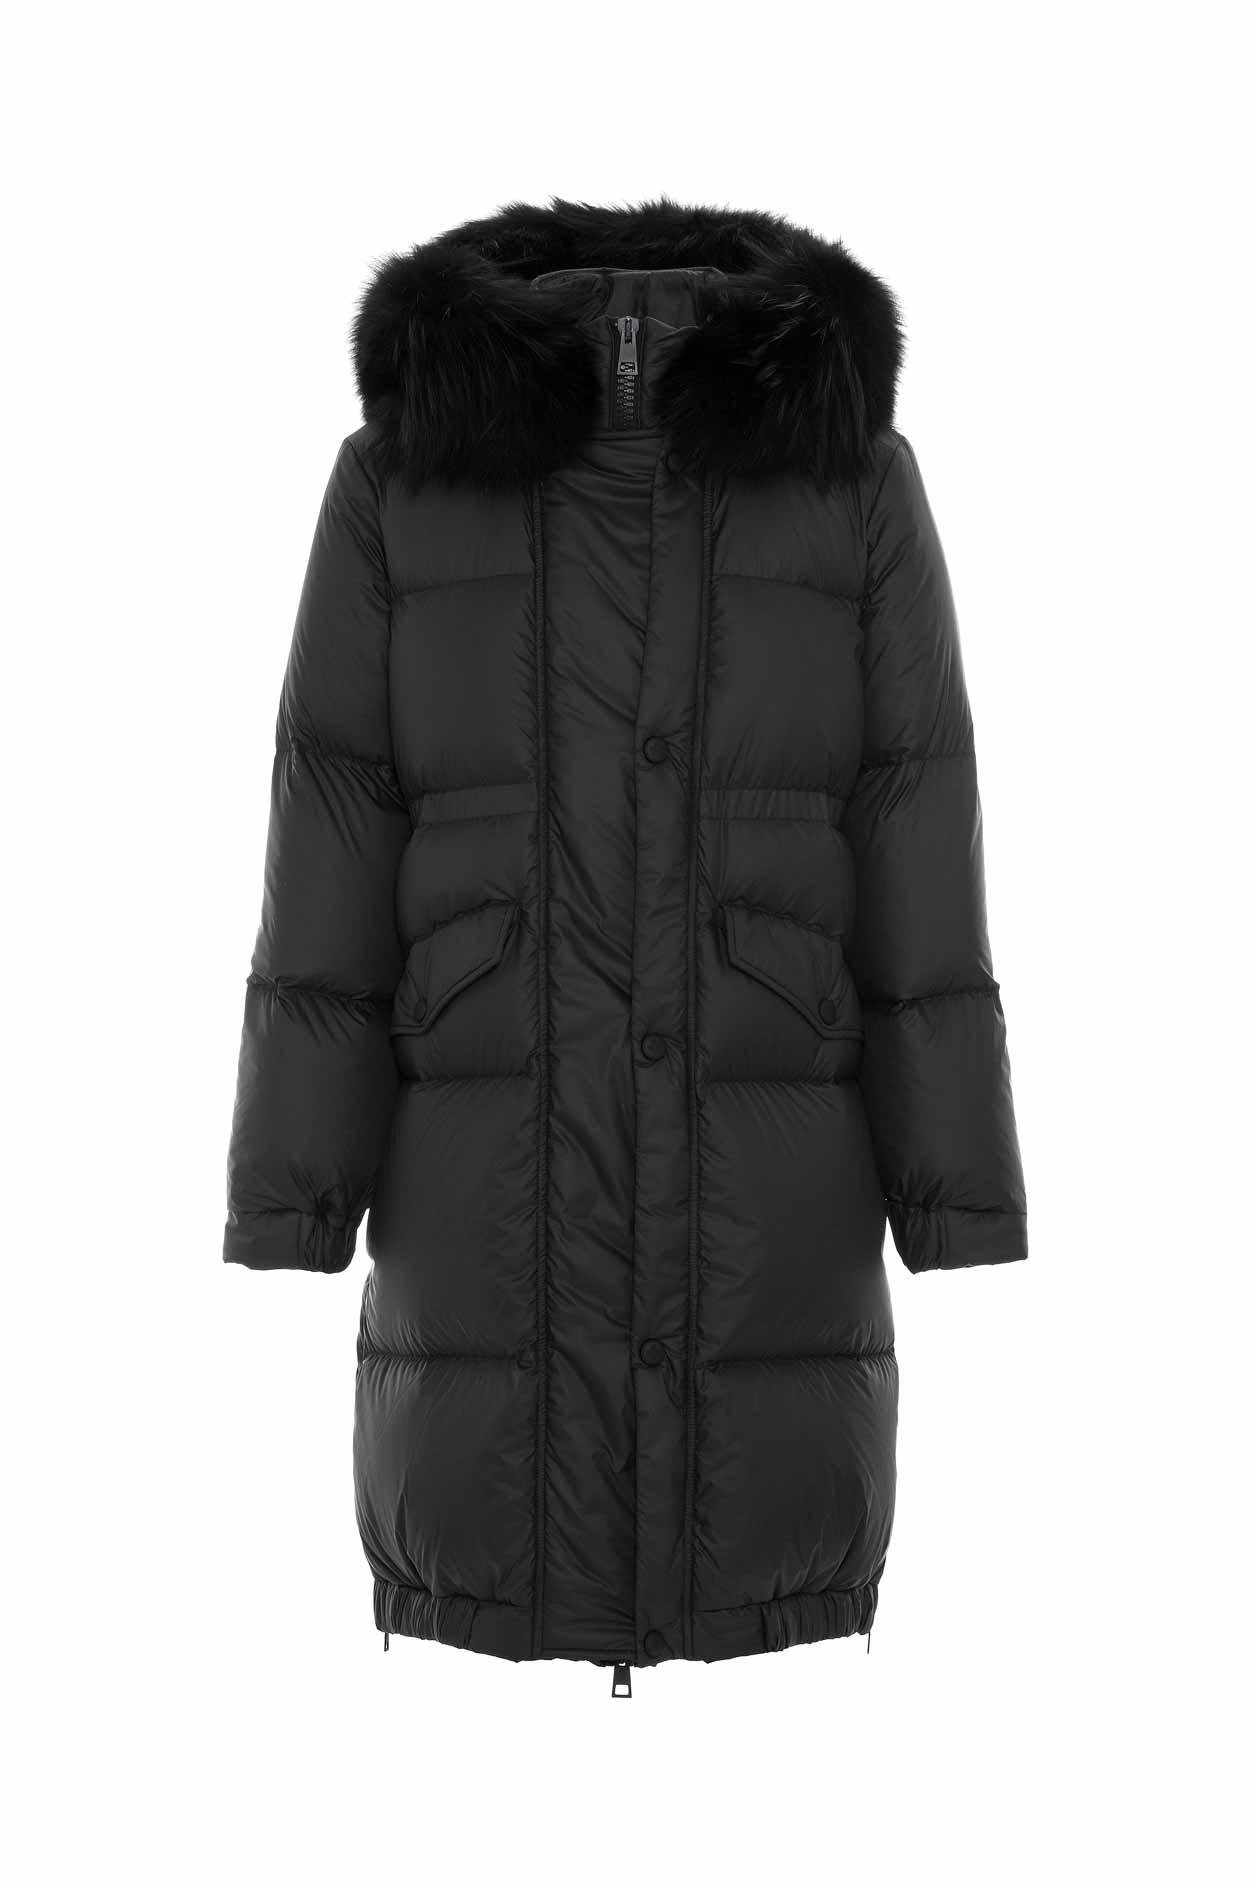 Mr & Mrs Italy Long Down Jacket For Woman With Fox Fur In Black / Black / Black